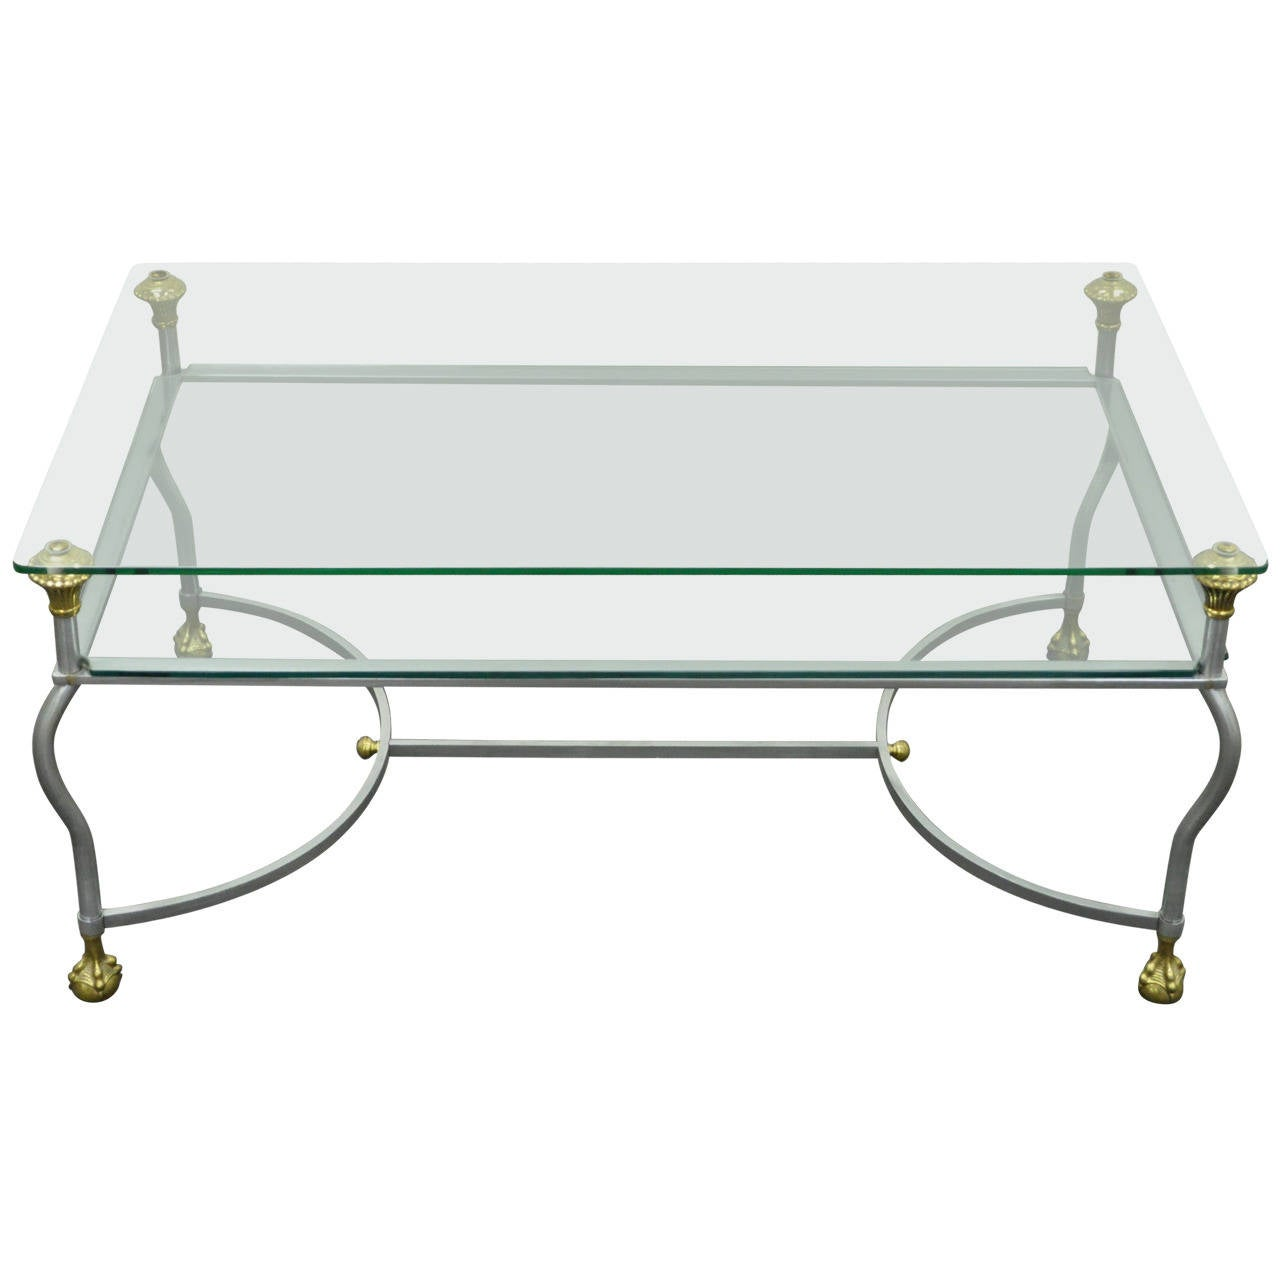 Rare Brass, Brushed Steel, and Glass Claw Foot Coffee Table after Maison Jansen